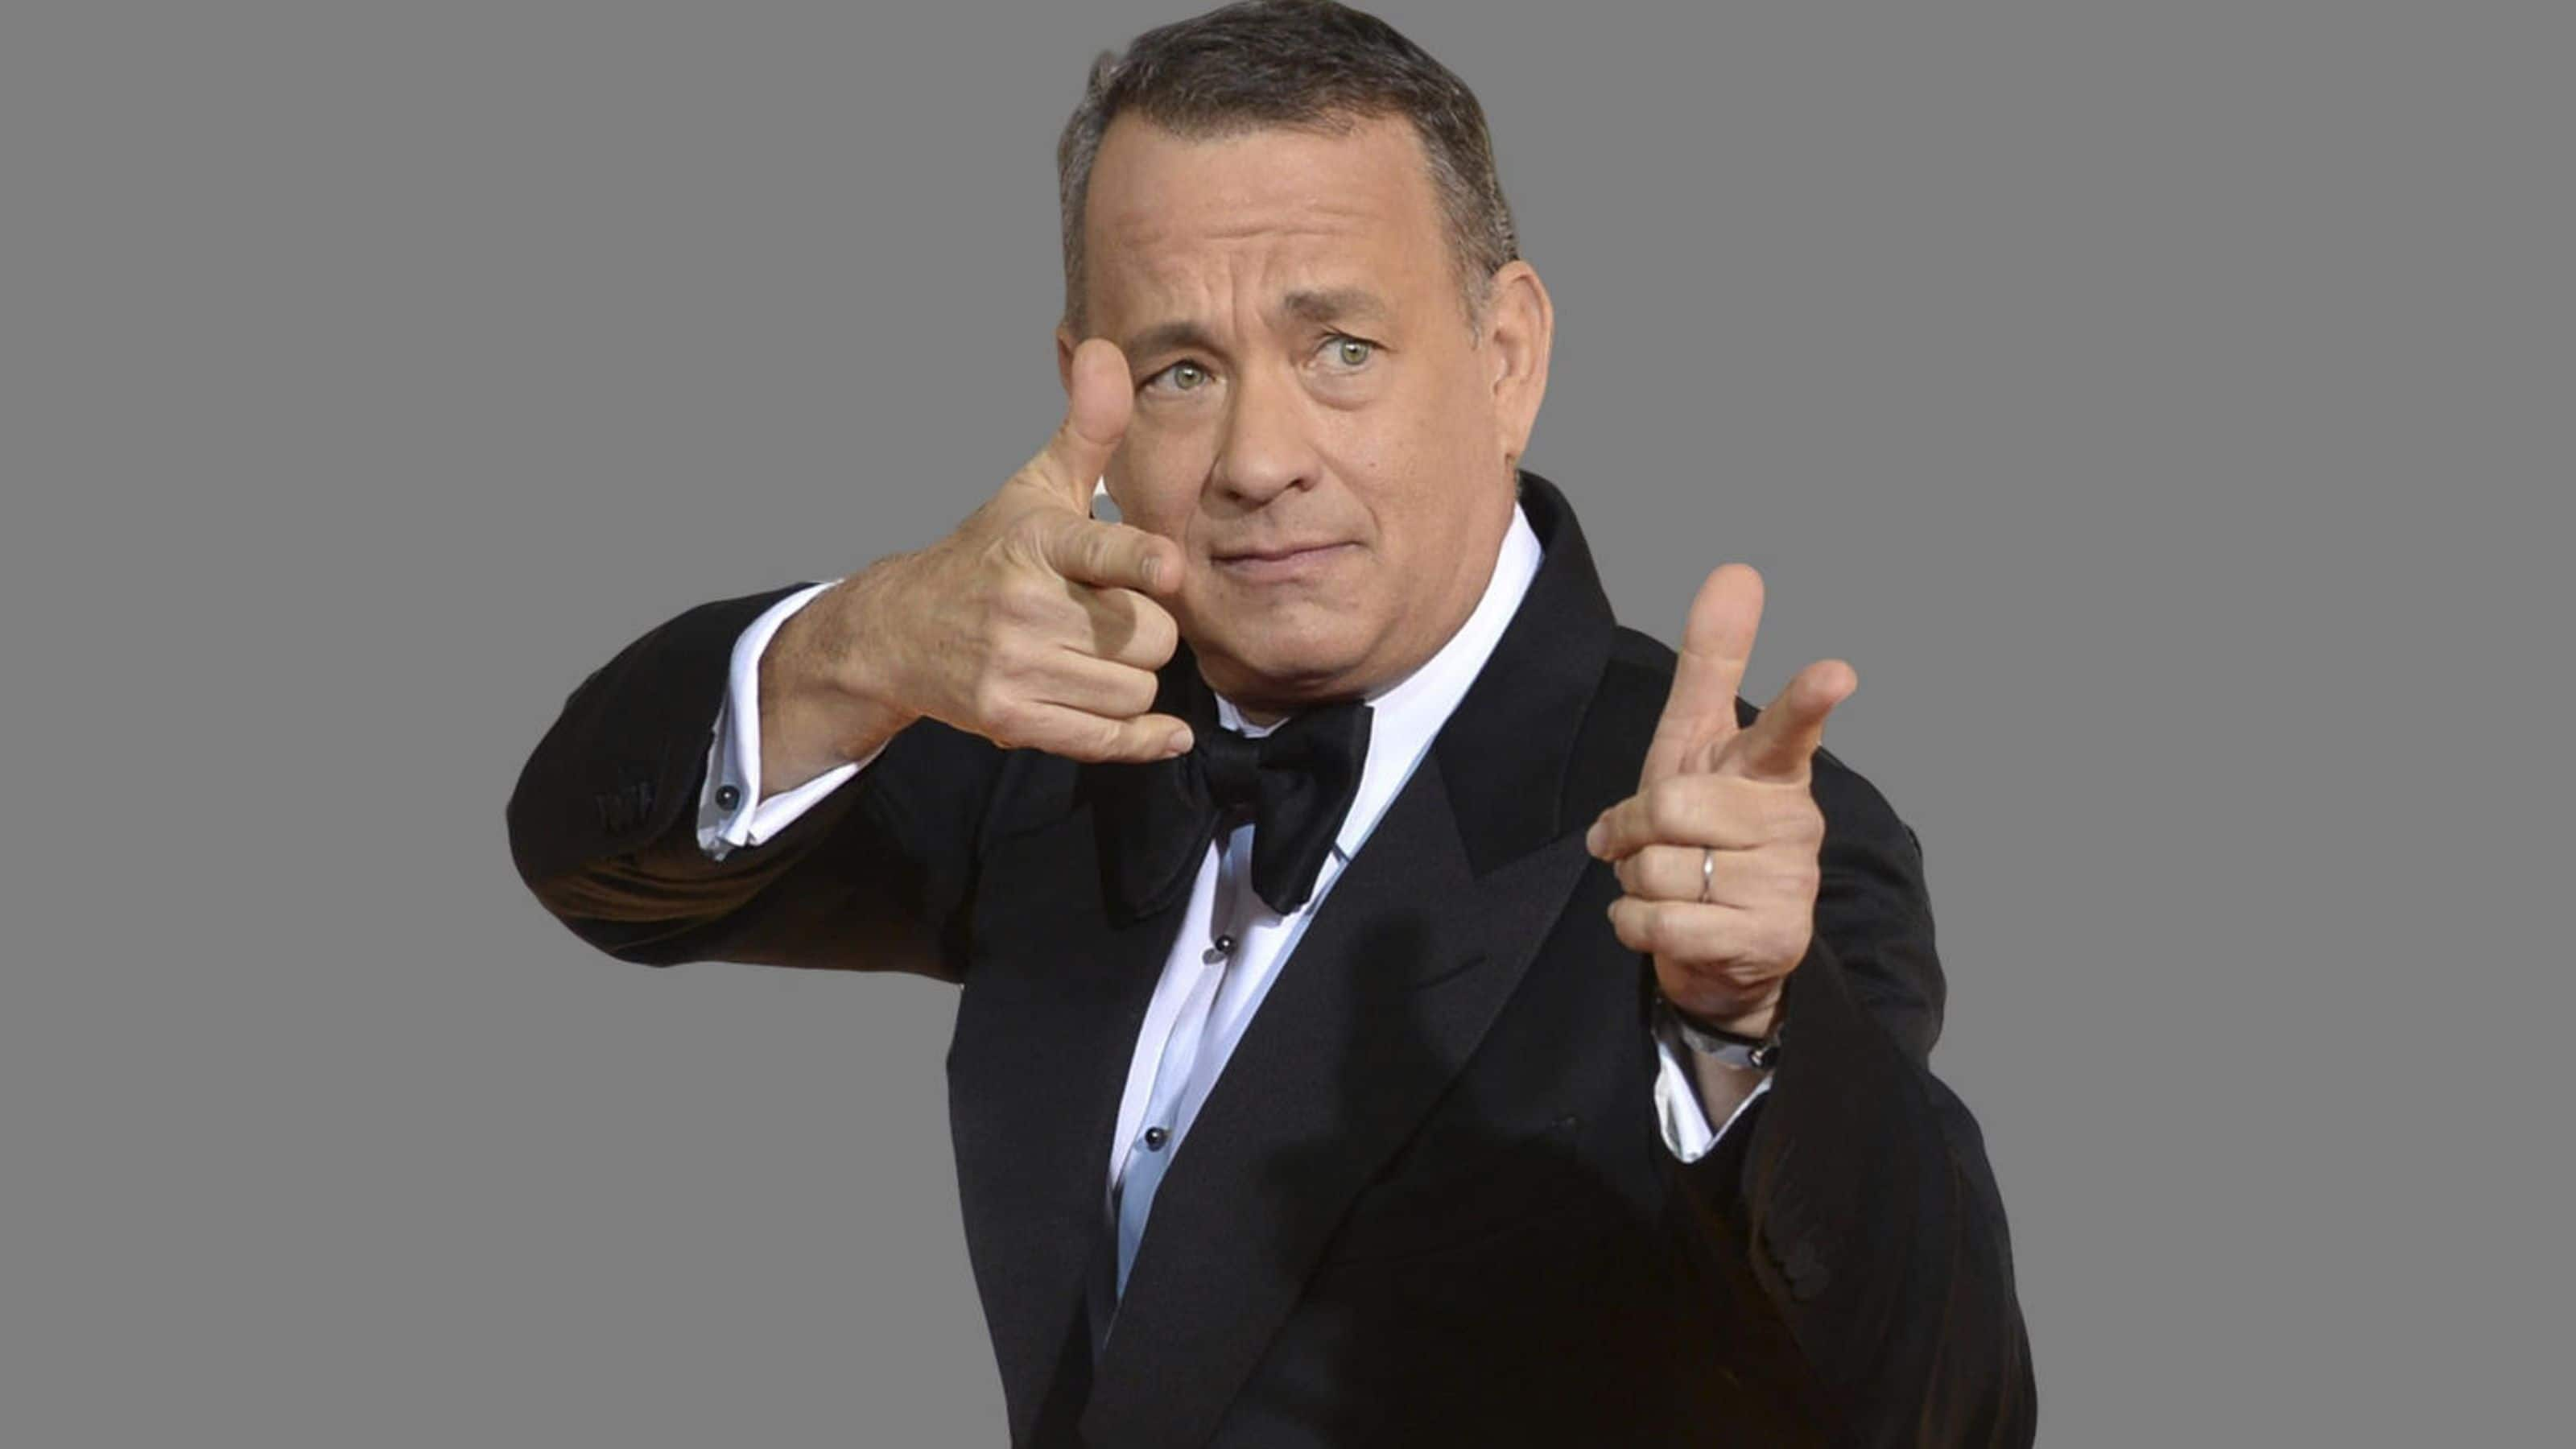 Tom Hanks Doesn't Want To Play A Good Guy